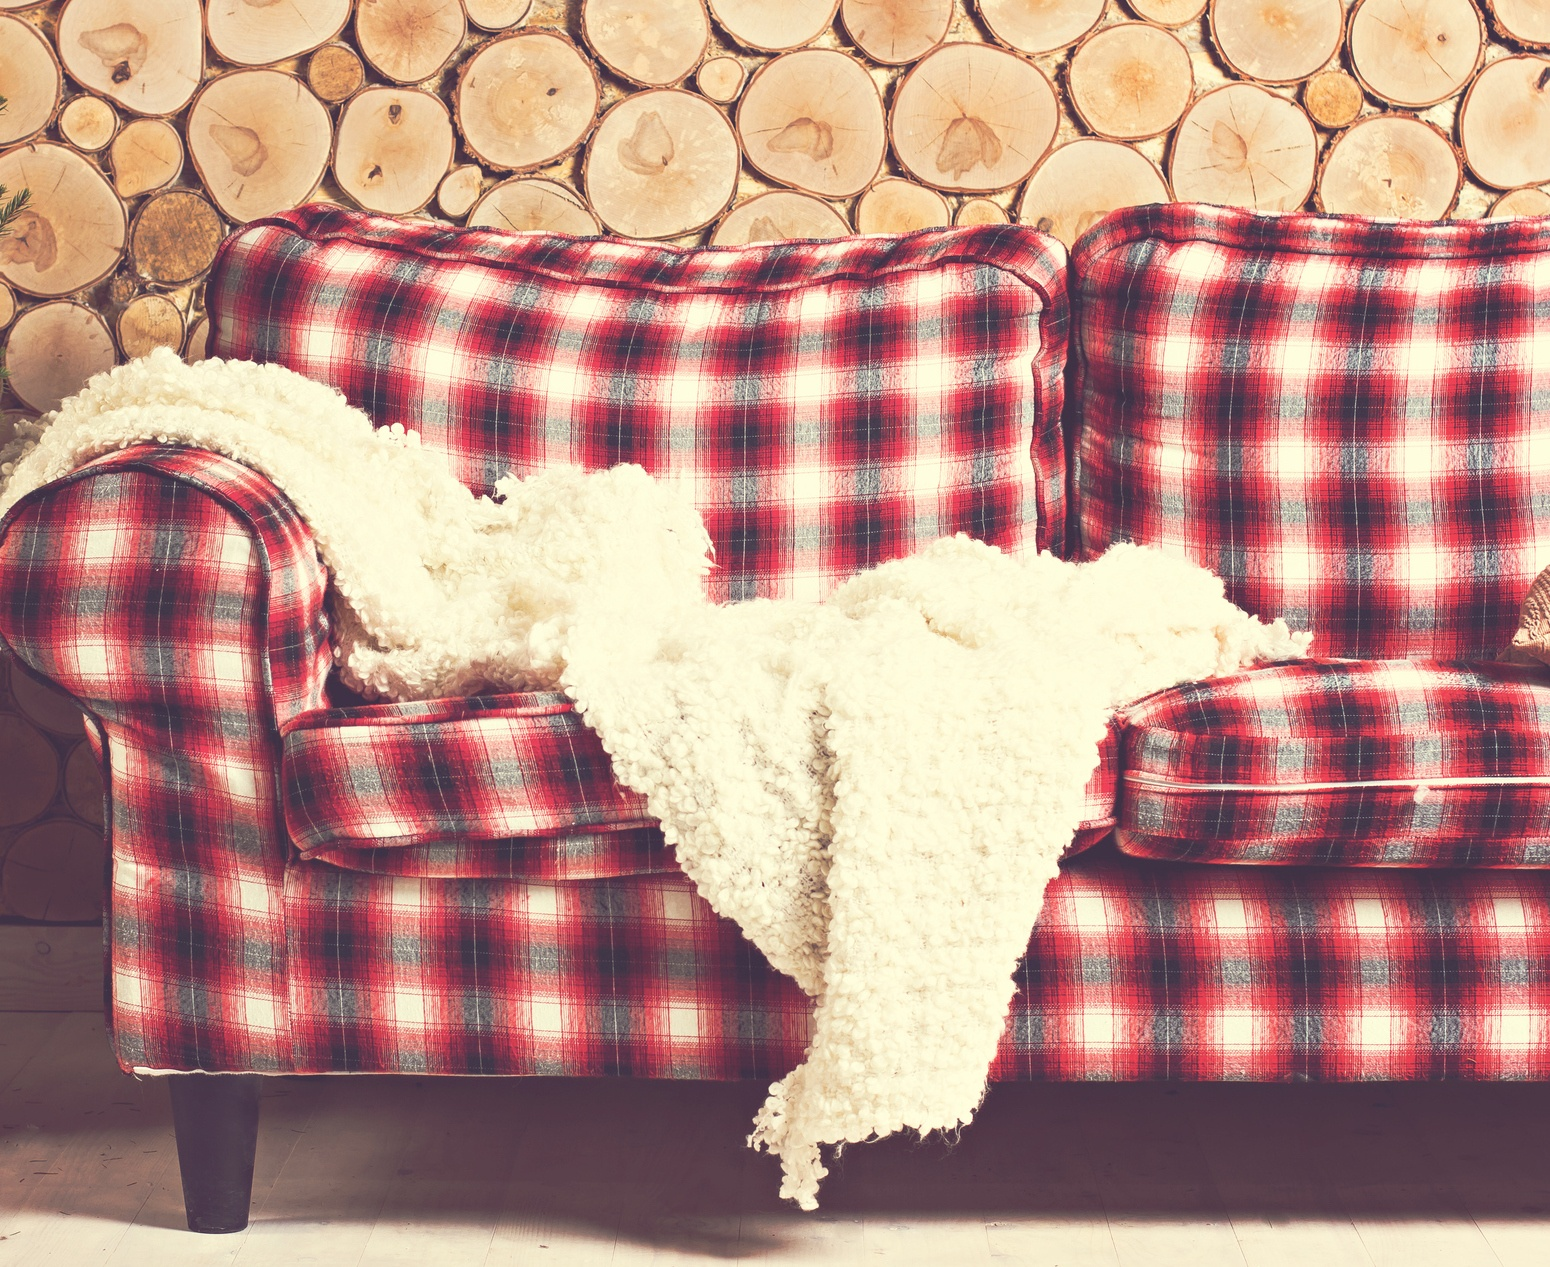 Red Plaid couch with wooden wall